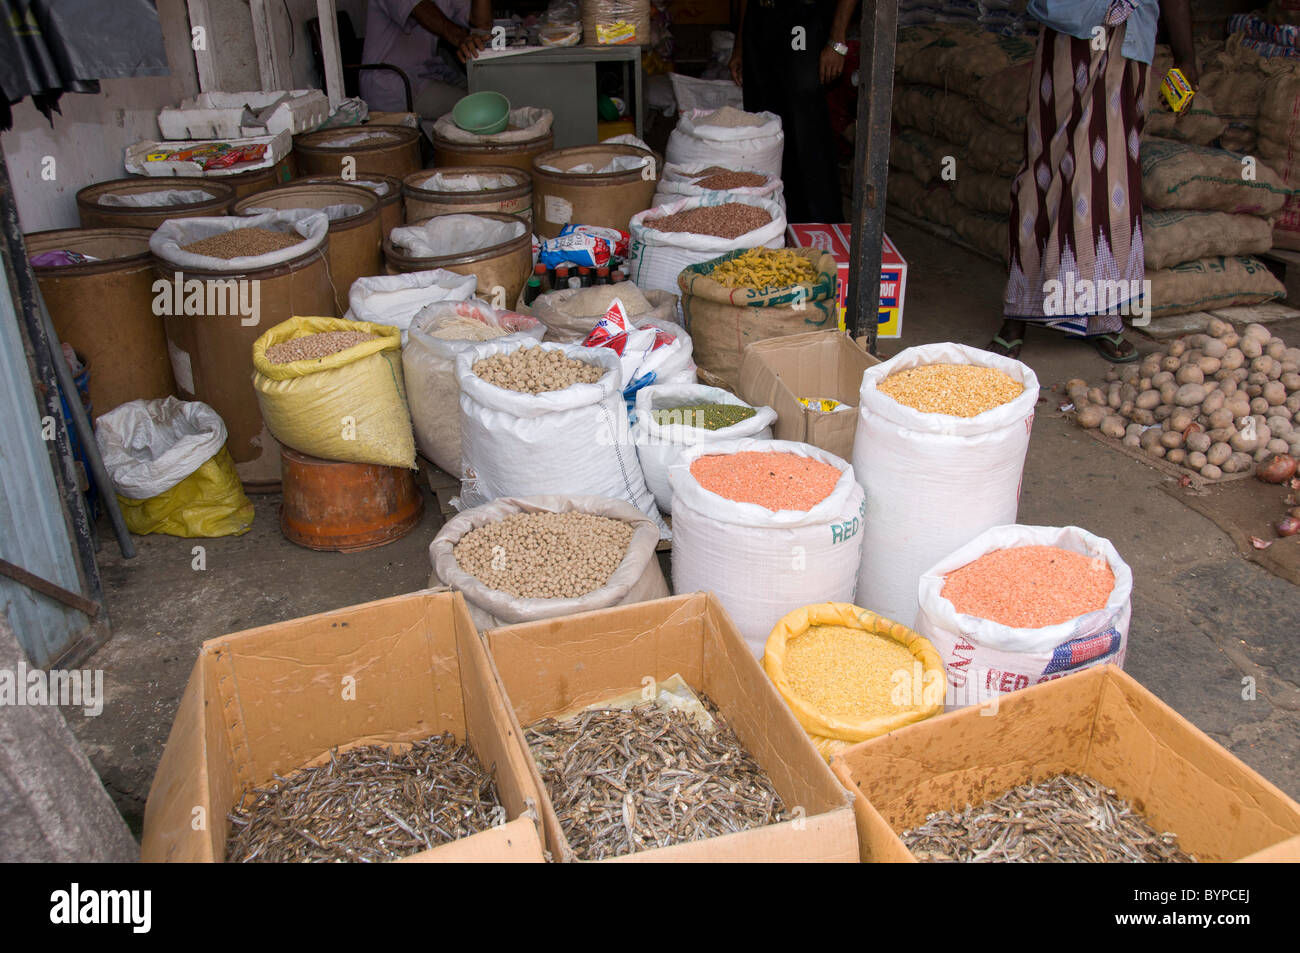 Sacks of pulses and boxes of small dried fish - Stock Image